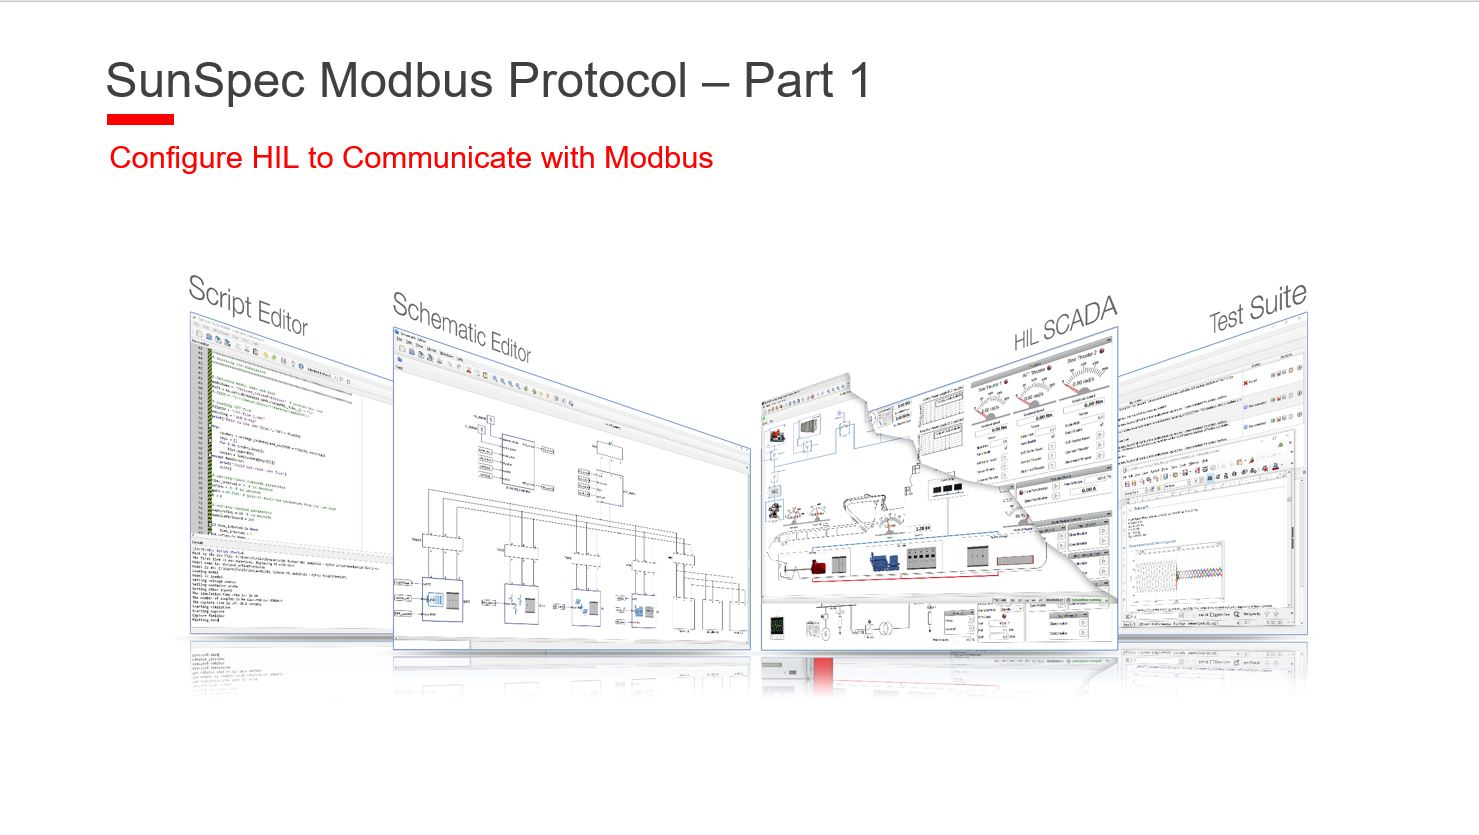 Modbus Tutorial: How to Configure HIL to Communicate with